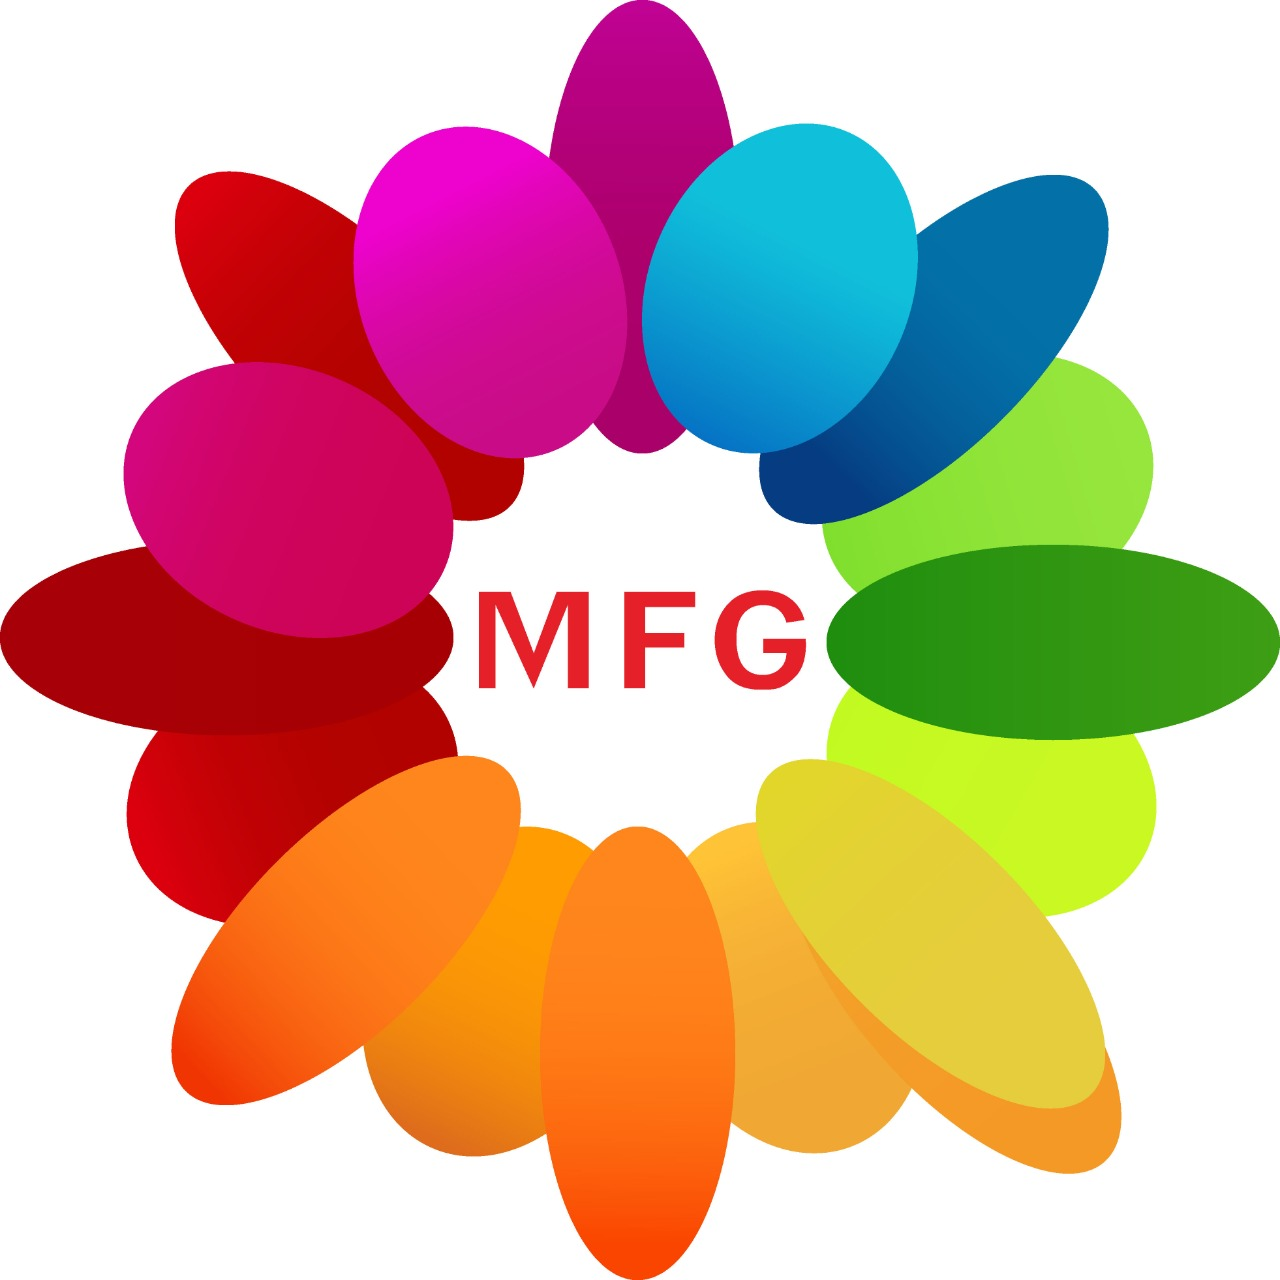 Bunch of 20 yellow Roses with Half kg chocolate fantasy Cake with box of 24 pcs rocher ferrero chocolates